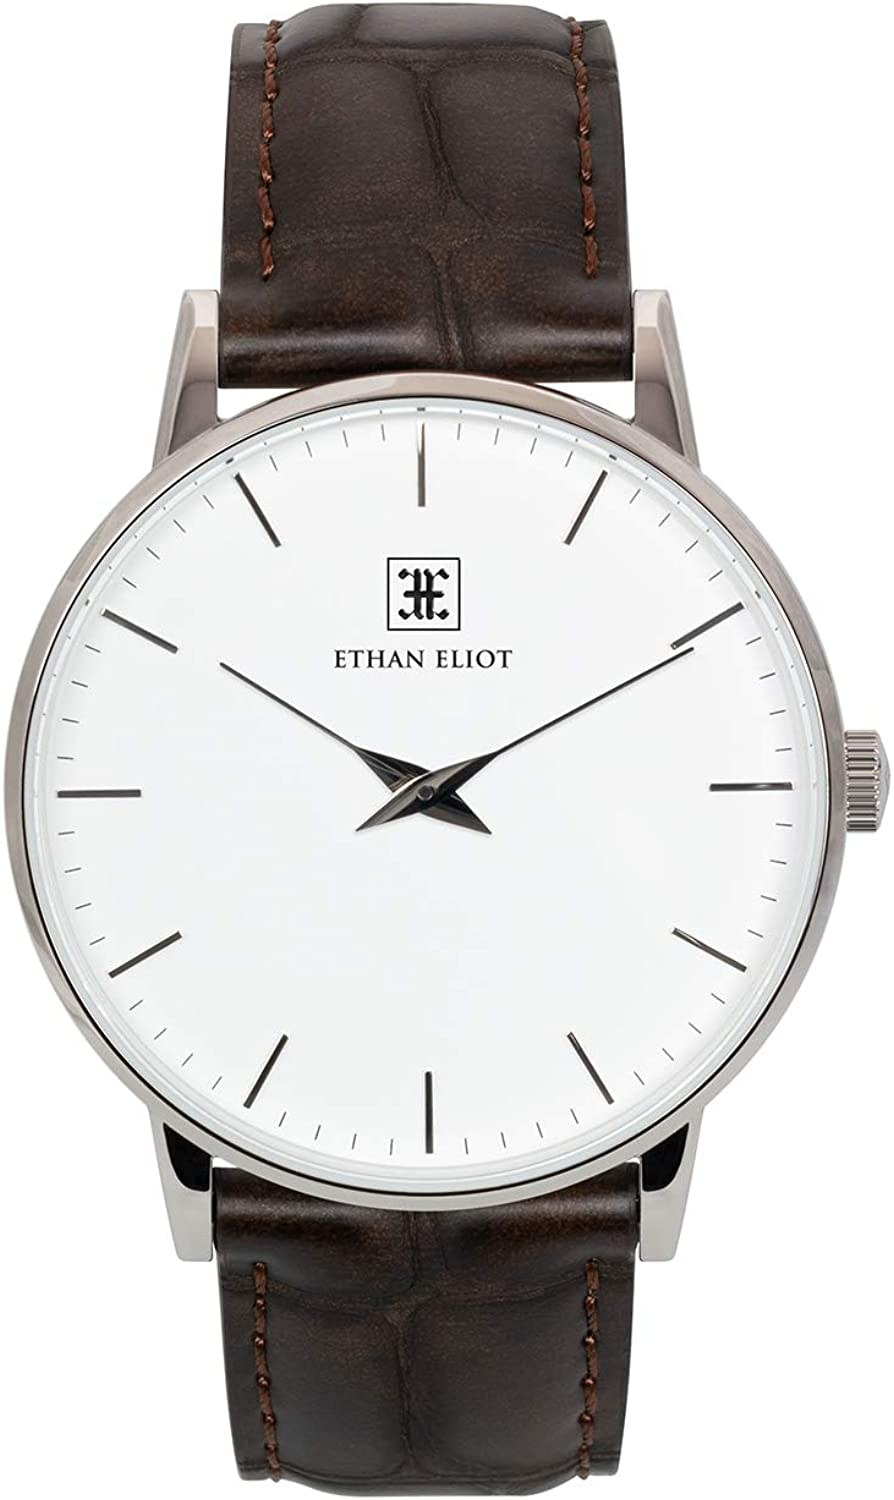 Ethan Eliot Classic Men s Watch, Oxford 40mm Silver Watch for Men, Stainless Steel Silver Case, White Dial Genuine Dark Brown Croc-Embossed Leather Strap, Water Resistant Watch EE40-SW34CDB